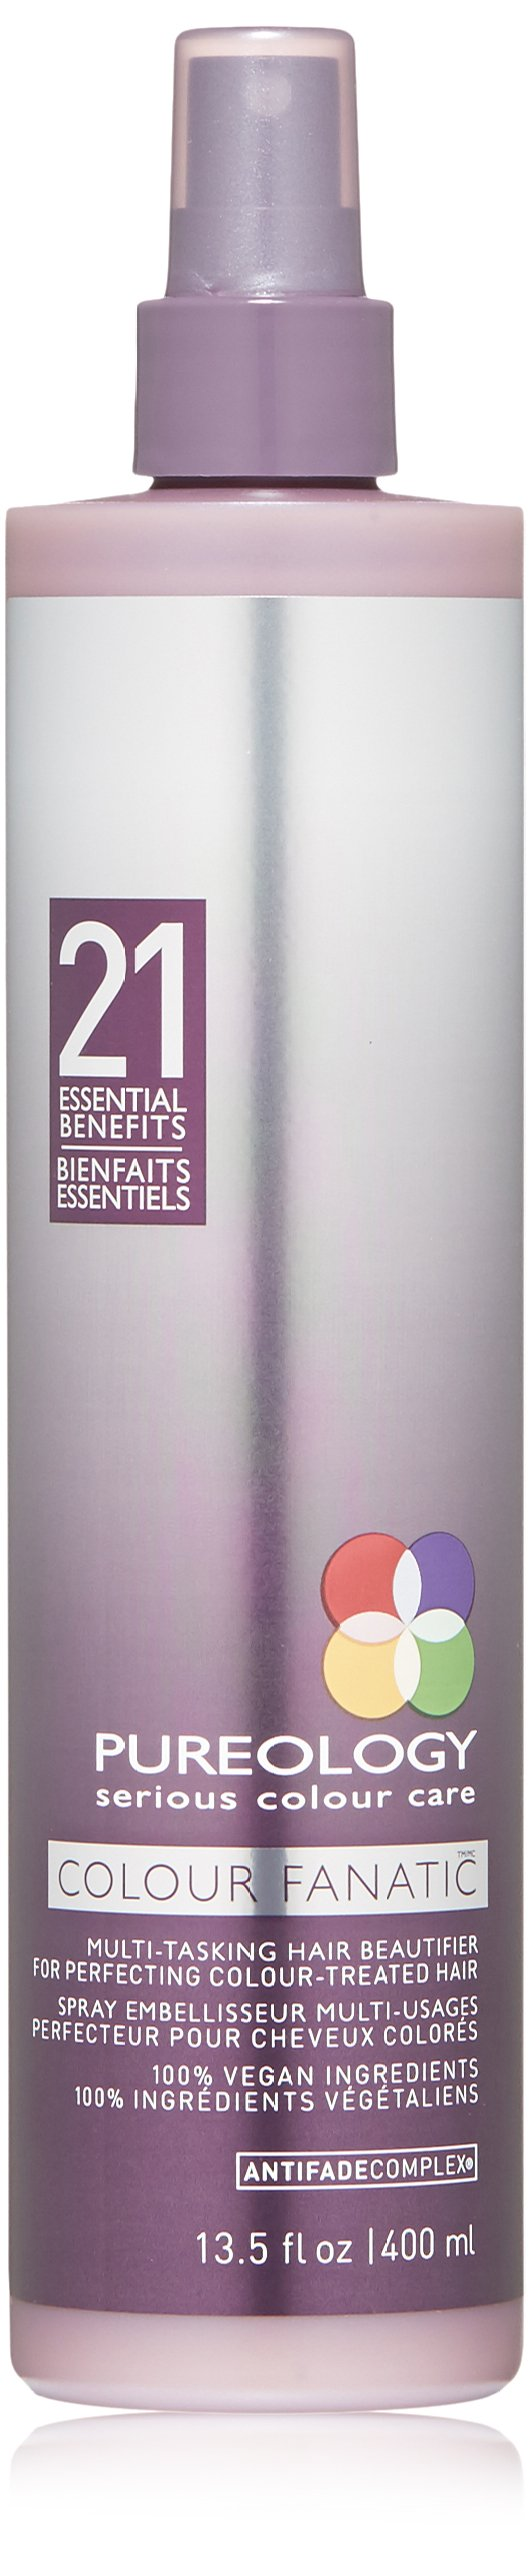 PUREOLOGY Colour Fanatic Multi-Tasking Hair Beautifier, 13.5 fl. Oz.